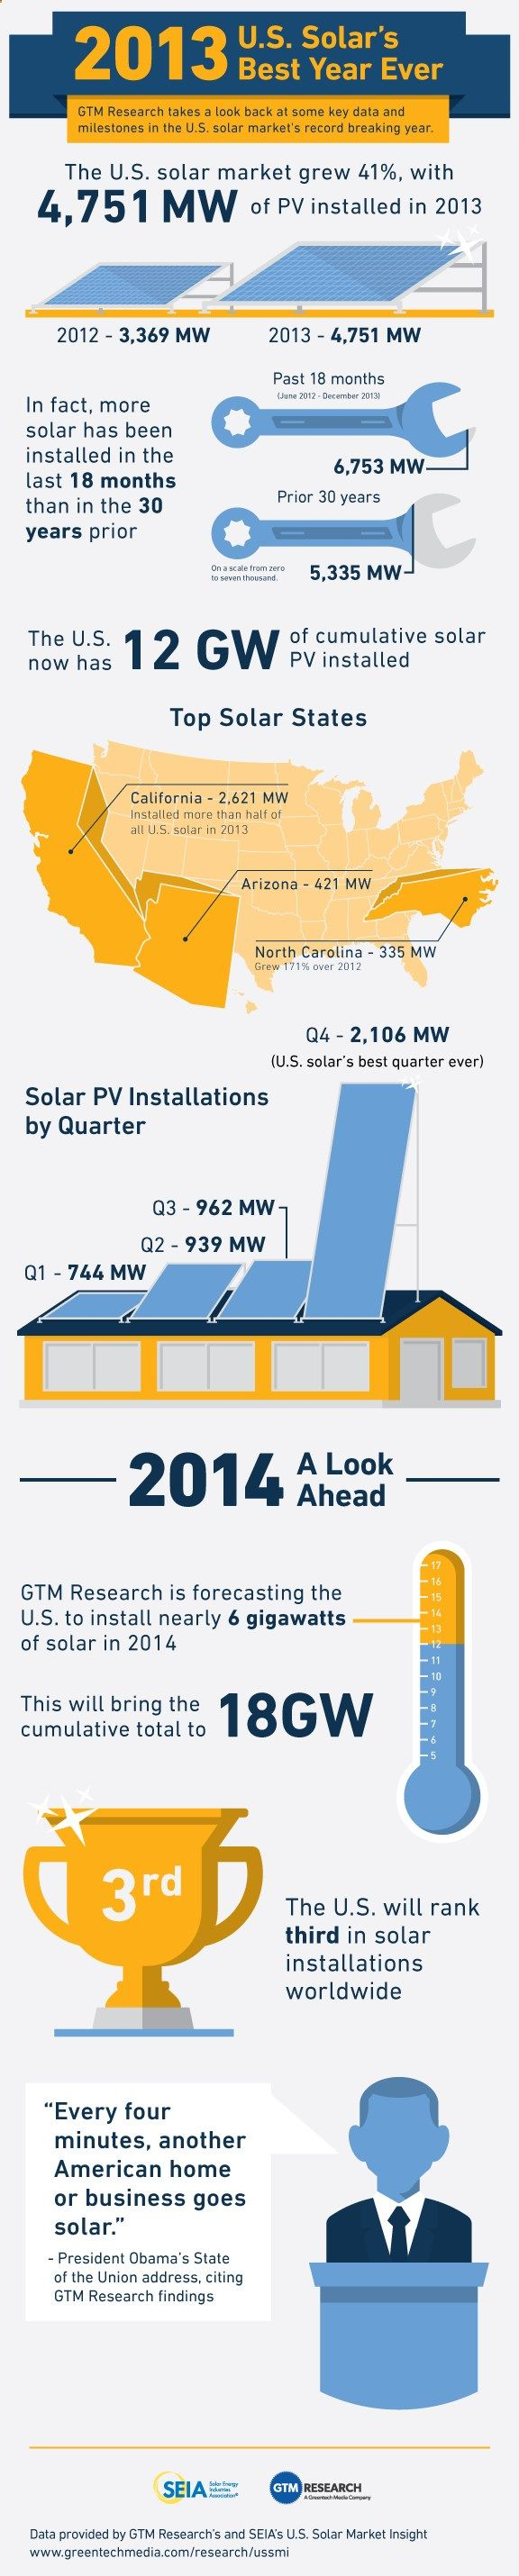 Vivint solar reviews california - 2013 Was Solar Energys Best Year Yet In The United States Take A Look At